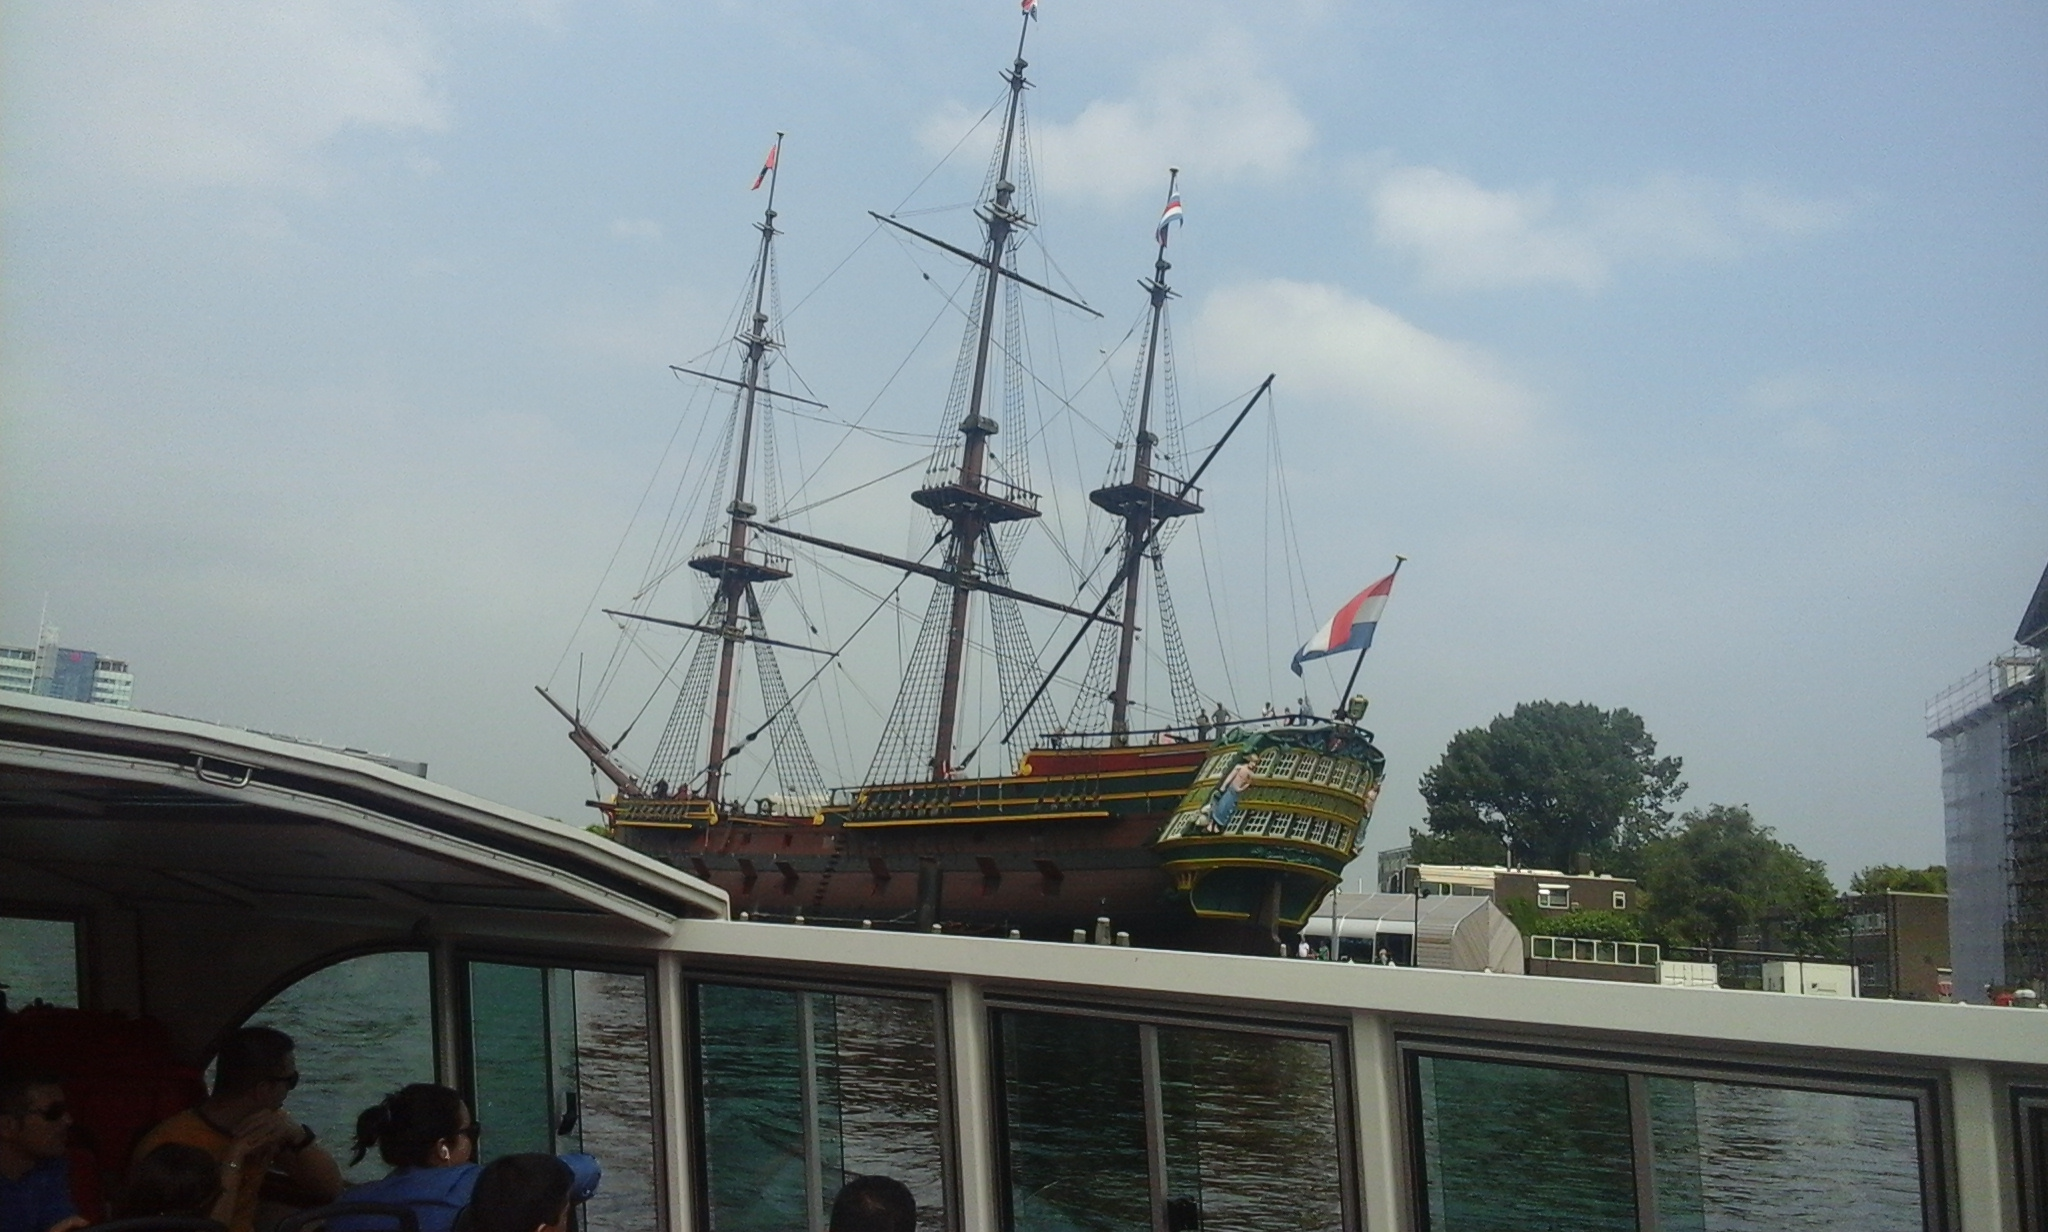 Sailing ship in Amsterdam